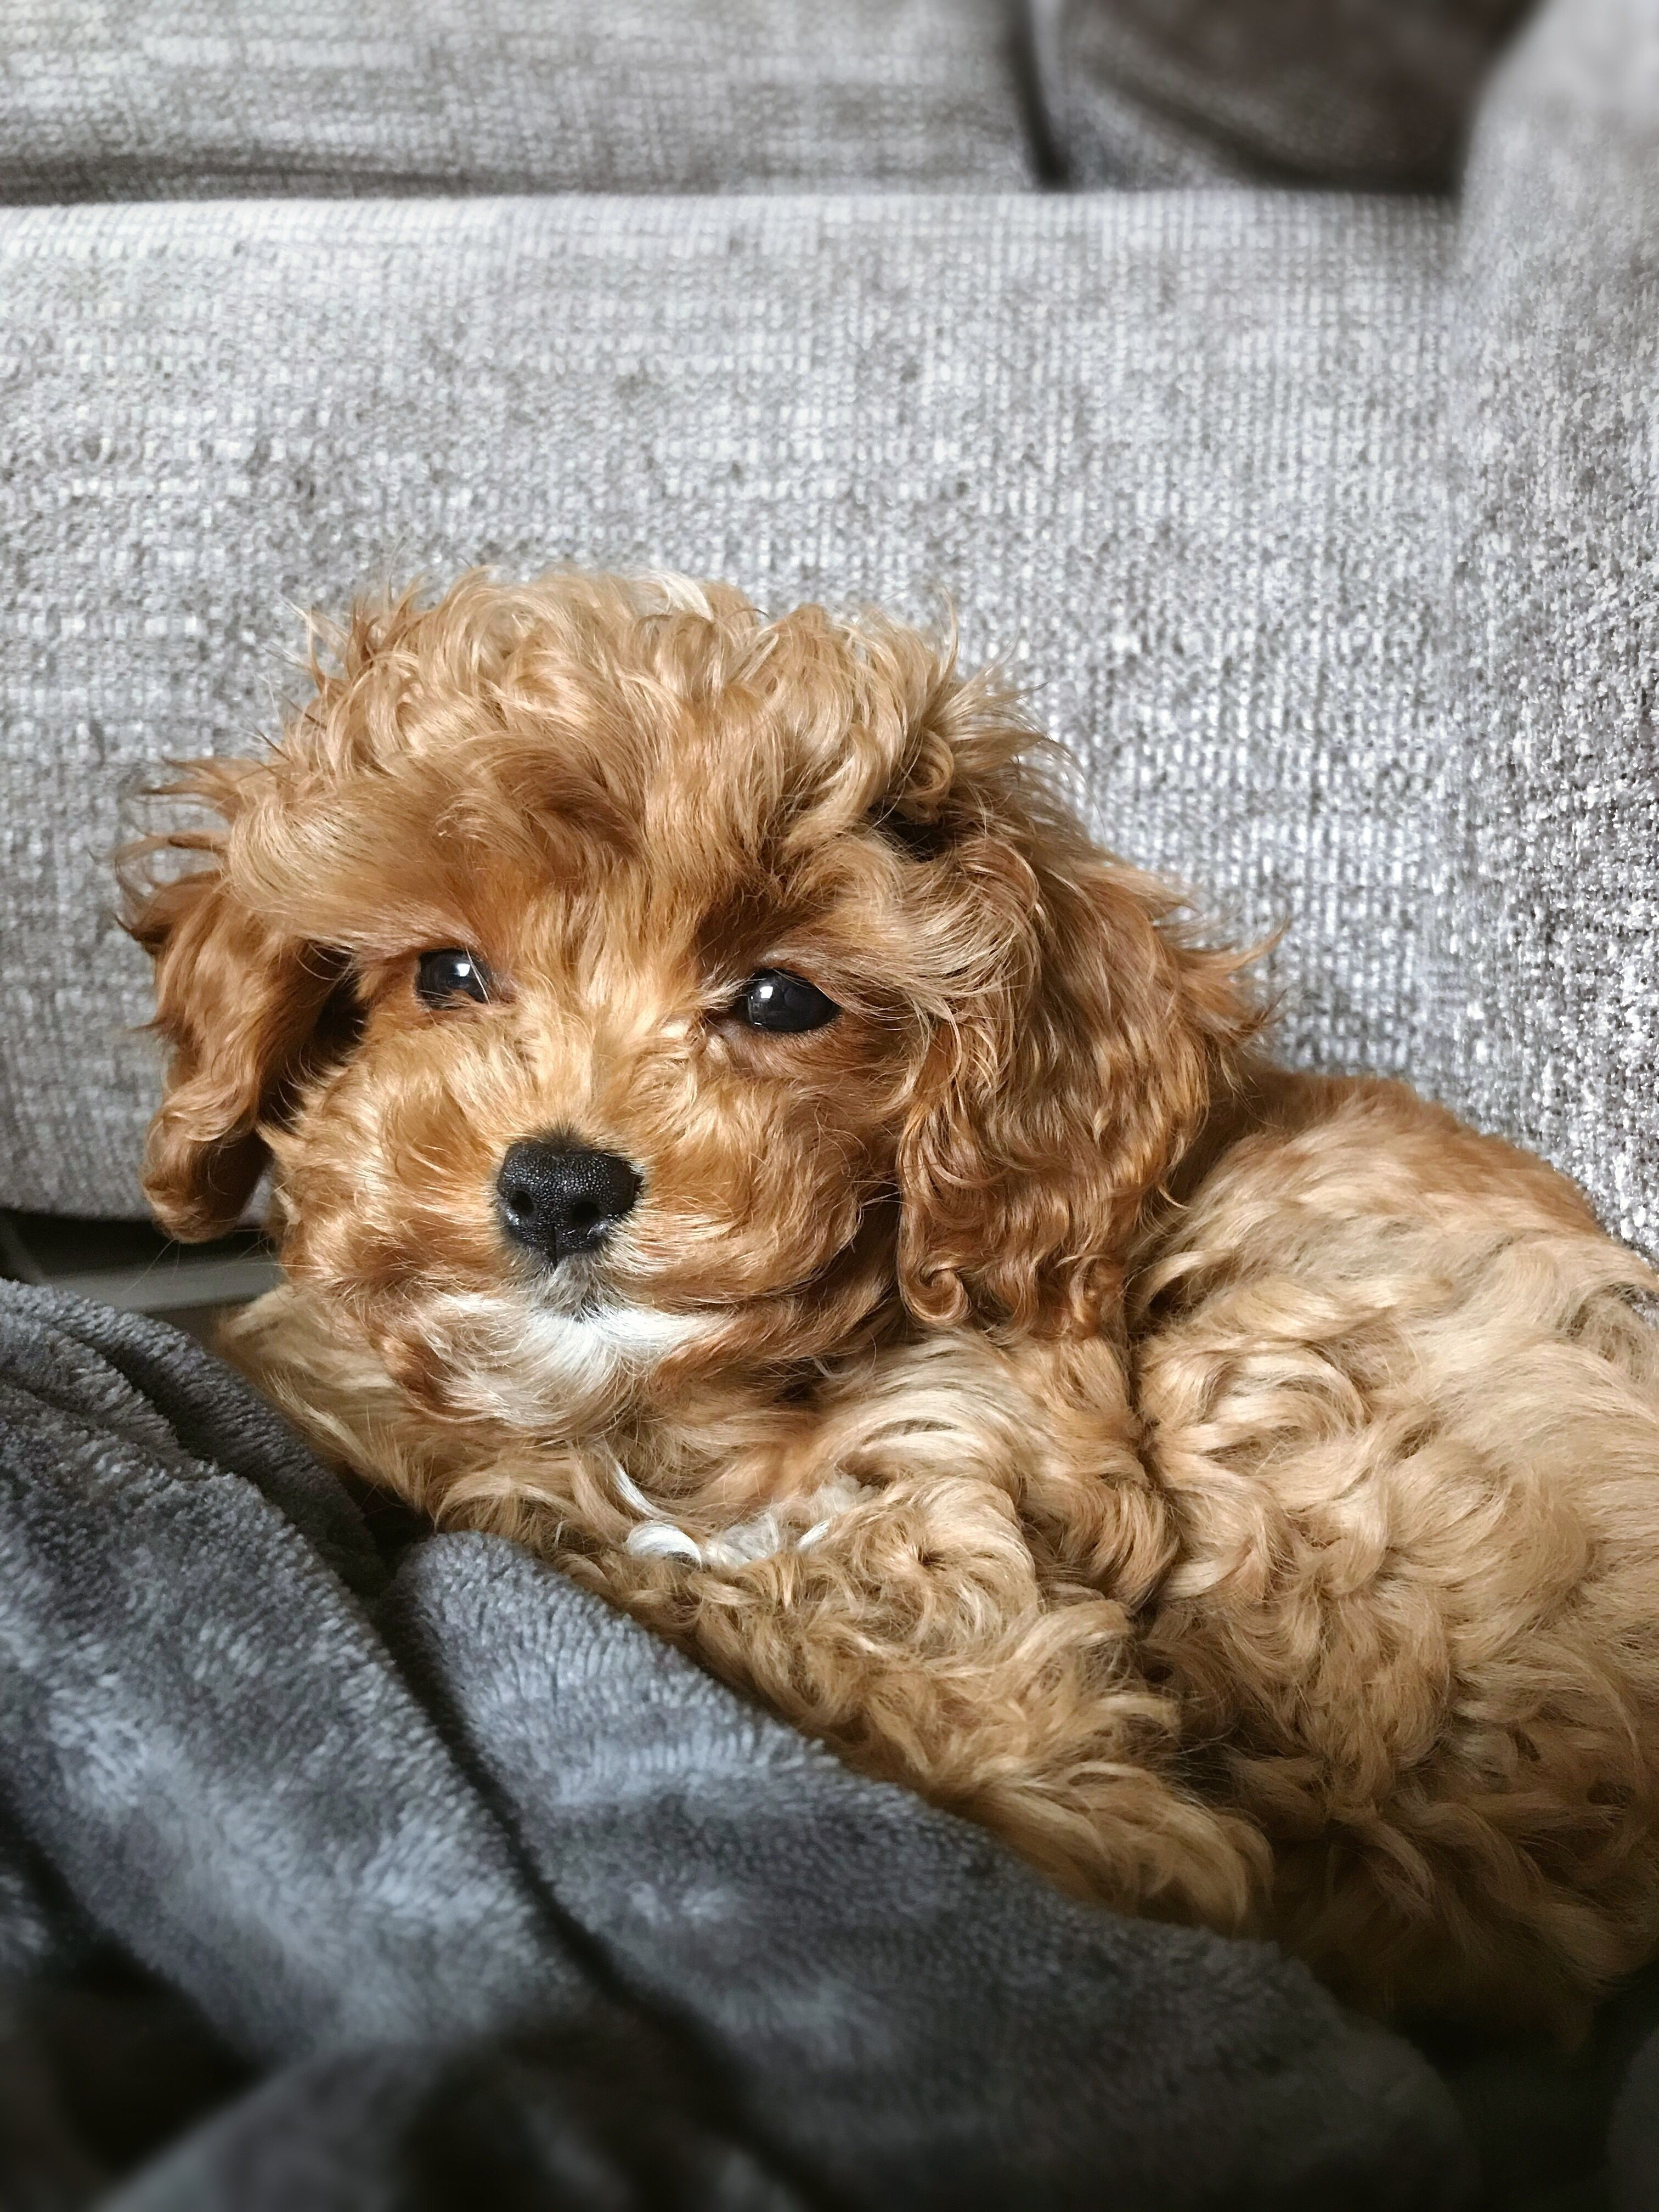 Cavapoo Puppy Cavapoo Puppies Cavapoo Puppies